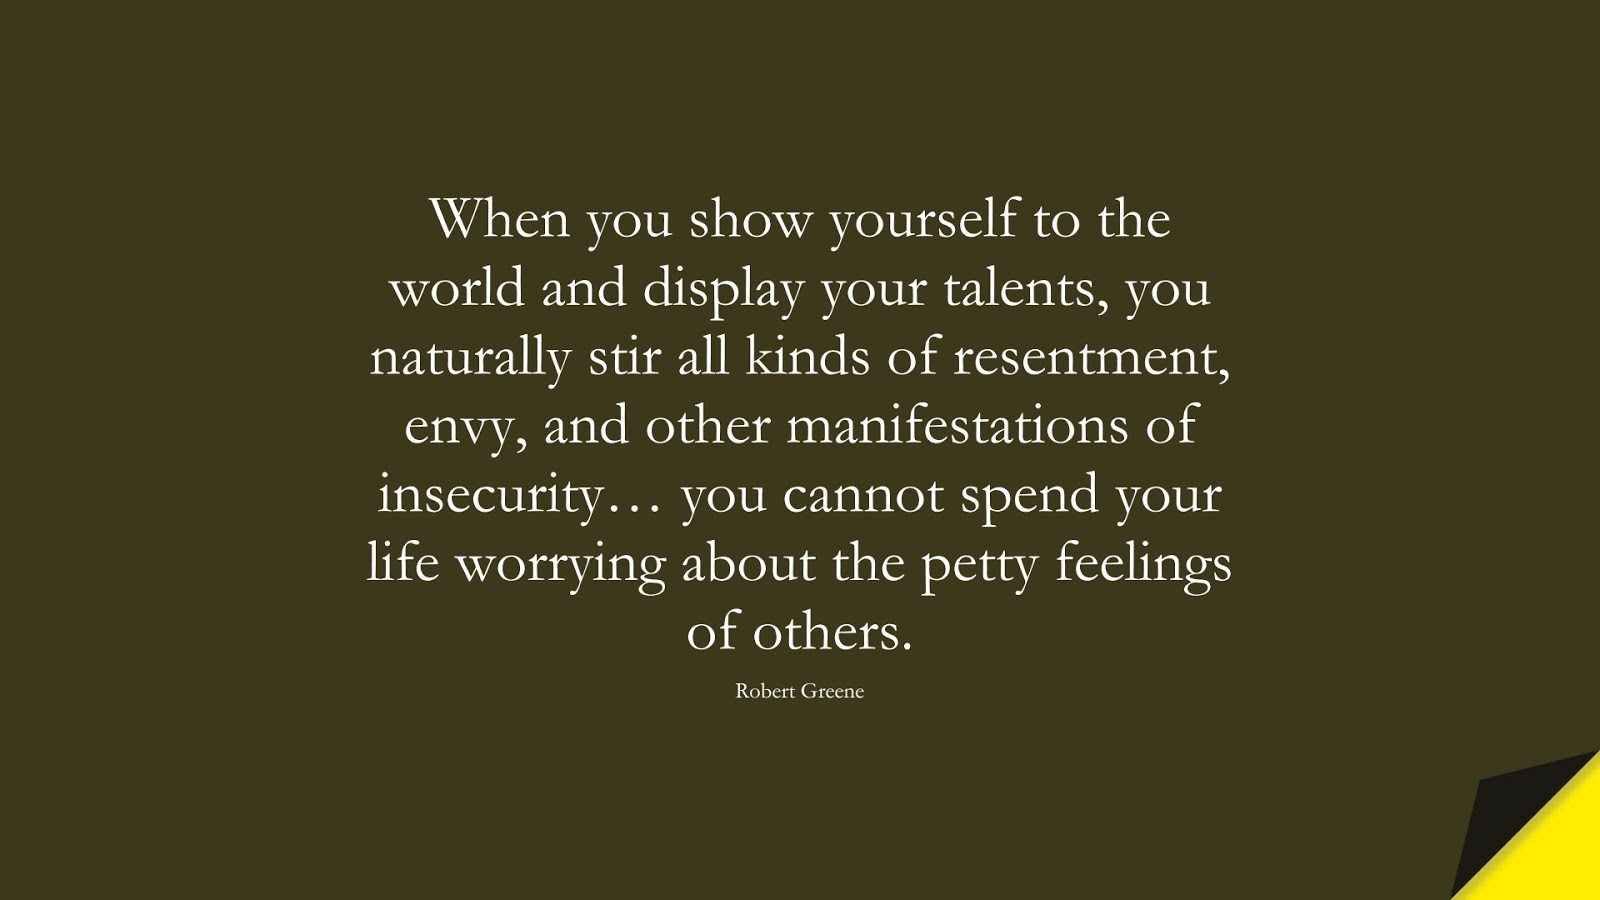 When you show yourself to the world and display your talents, you naturally stir all kinds of resentment, envy, and other manifestations of insecurity… you cannot spend your life worrying about the petty feelings of others. (Robert Greene);  #BeYourselfQuotes